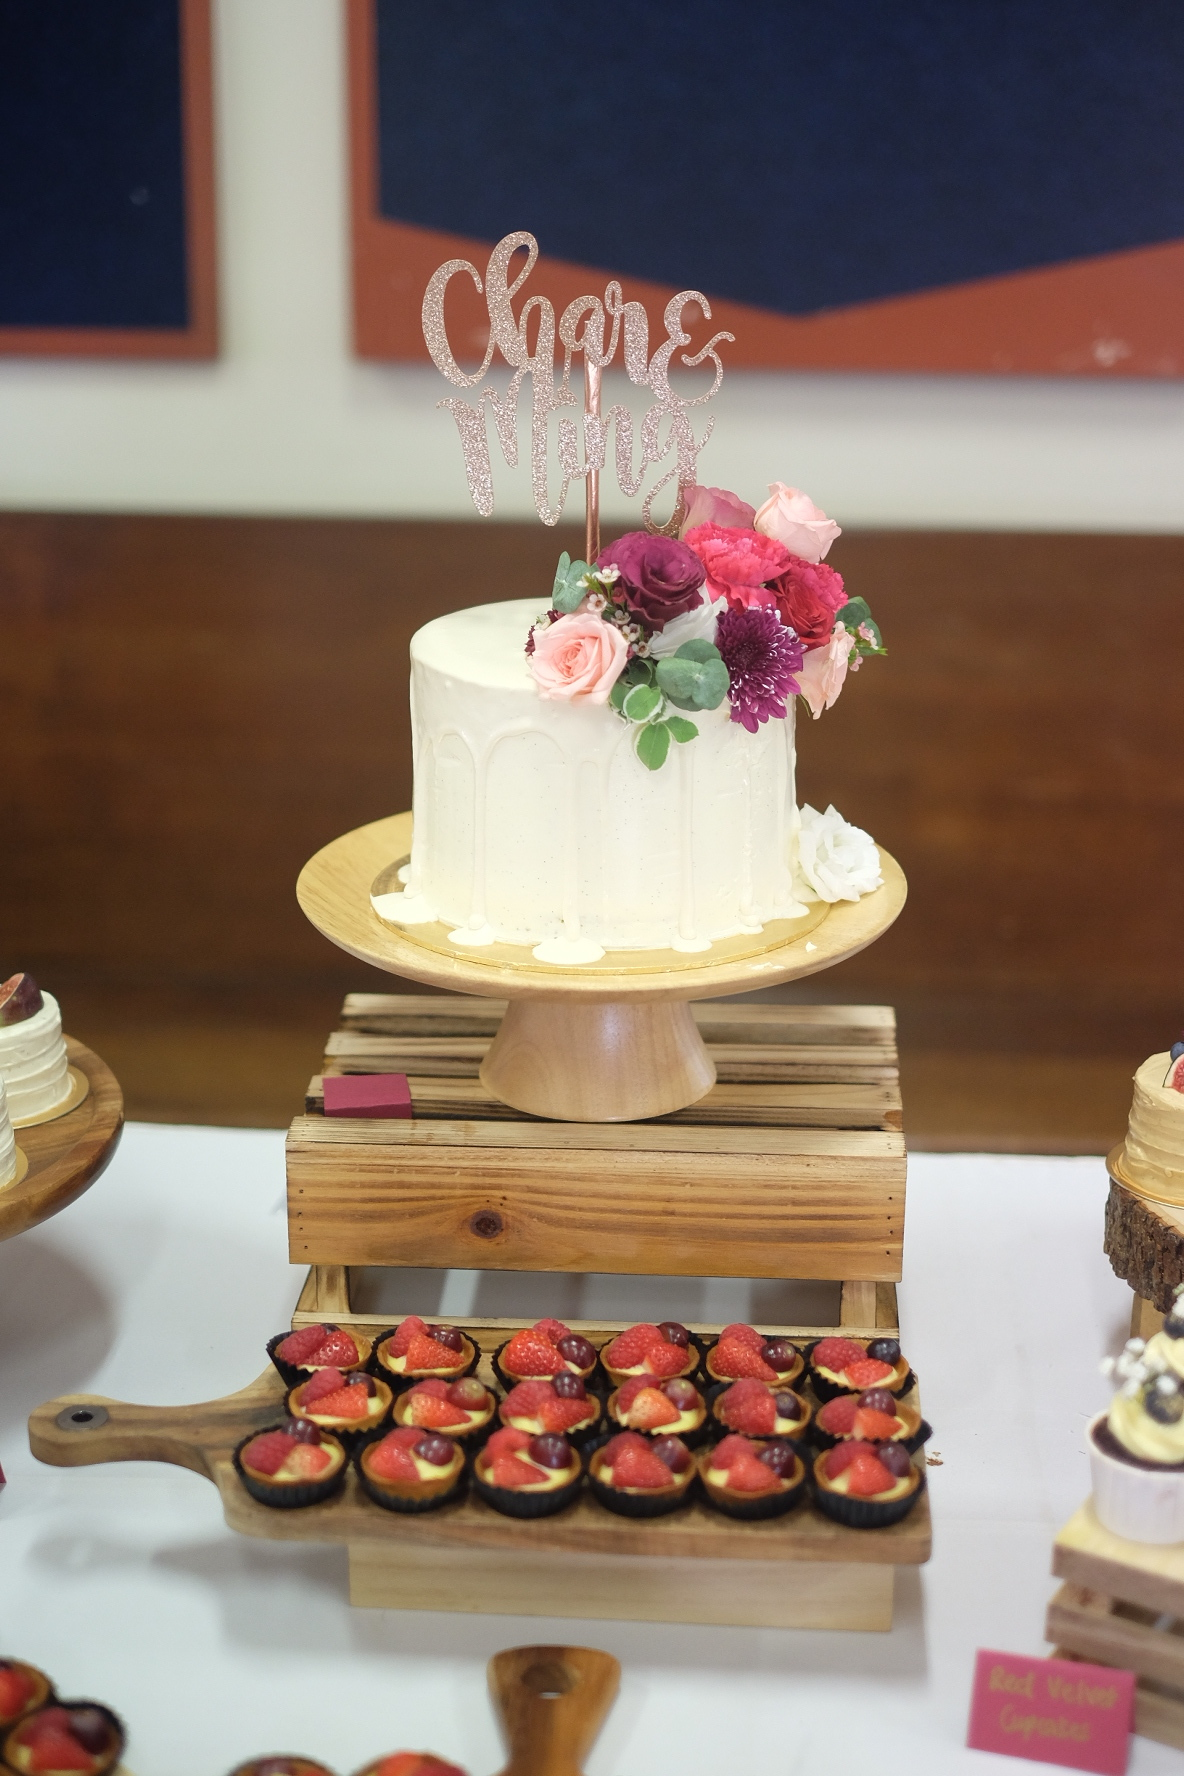 #Charming's Lunch Reception Dessert Table